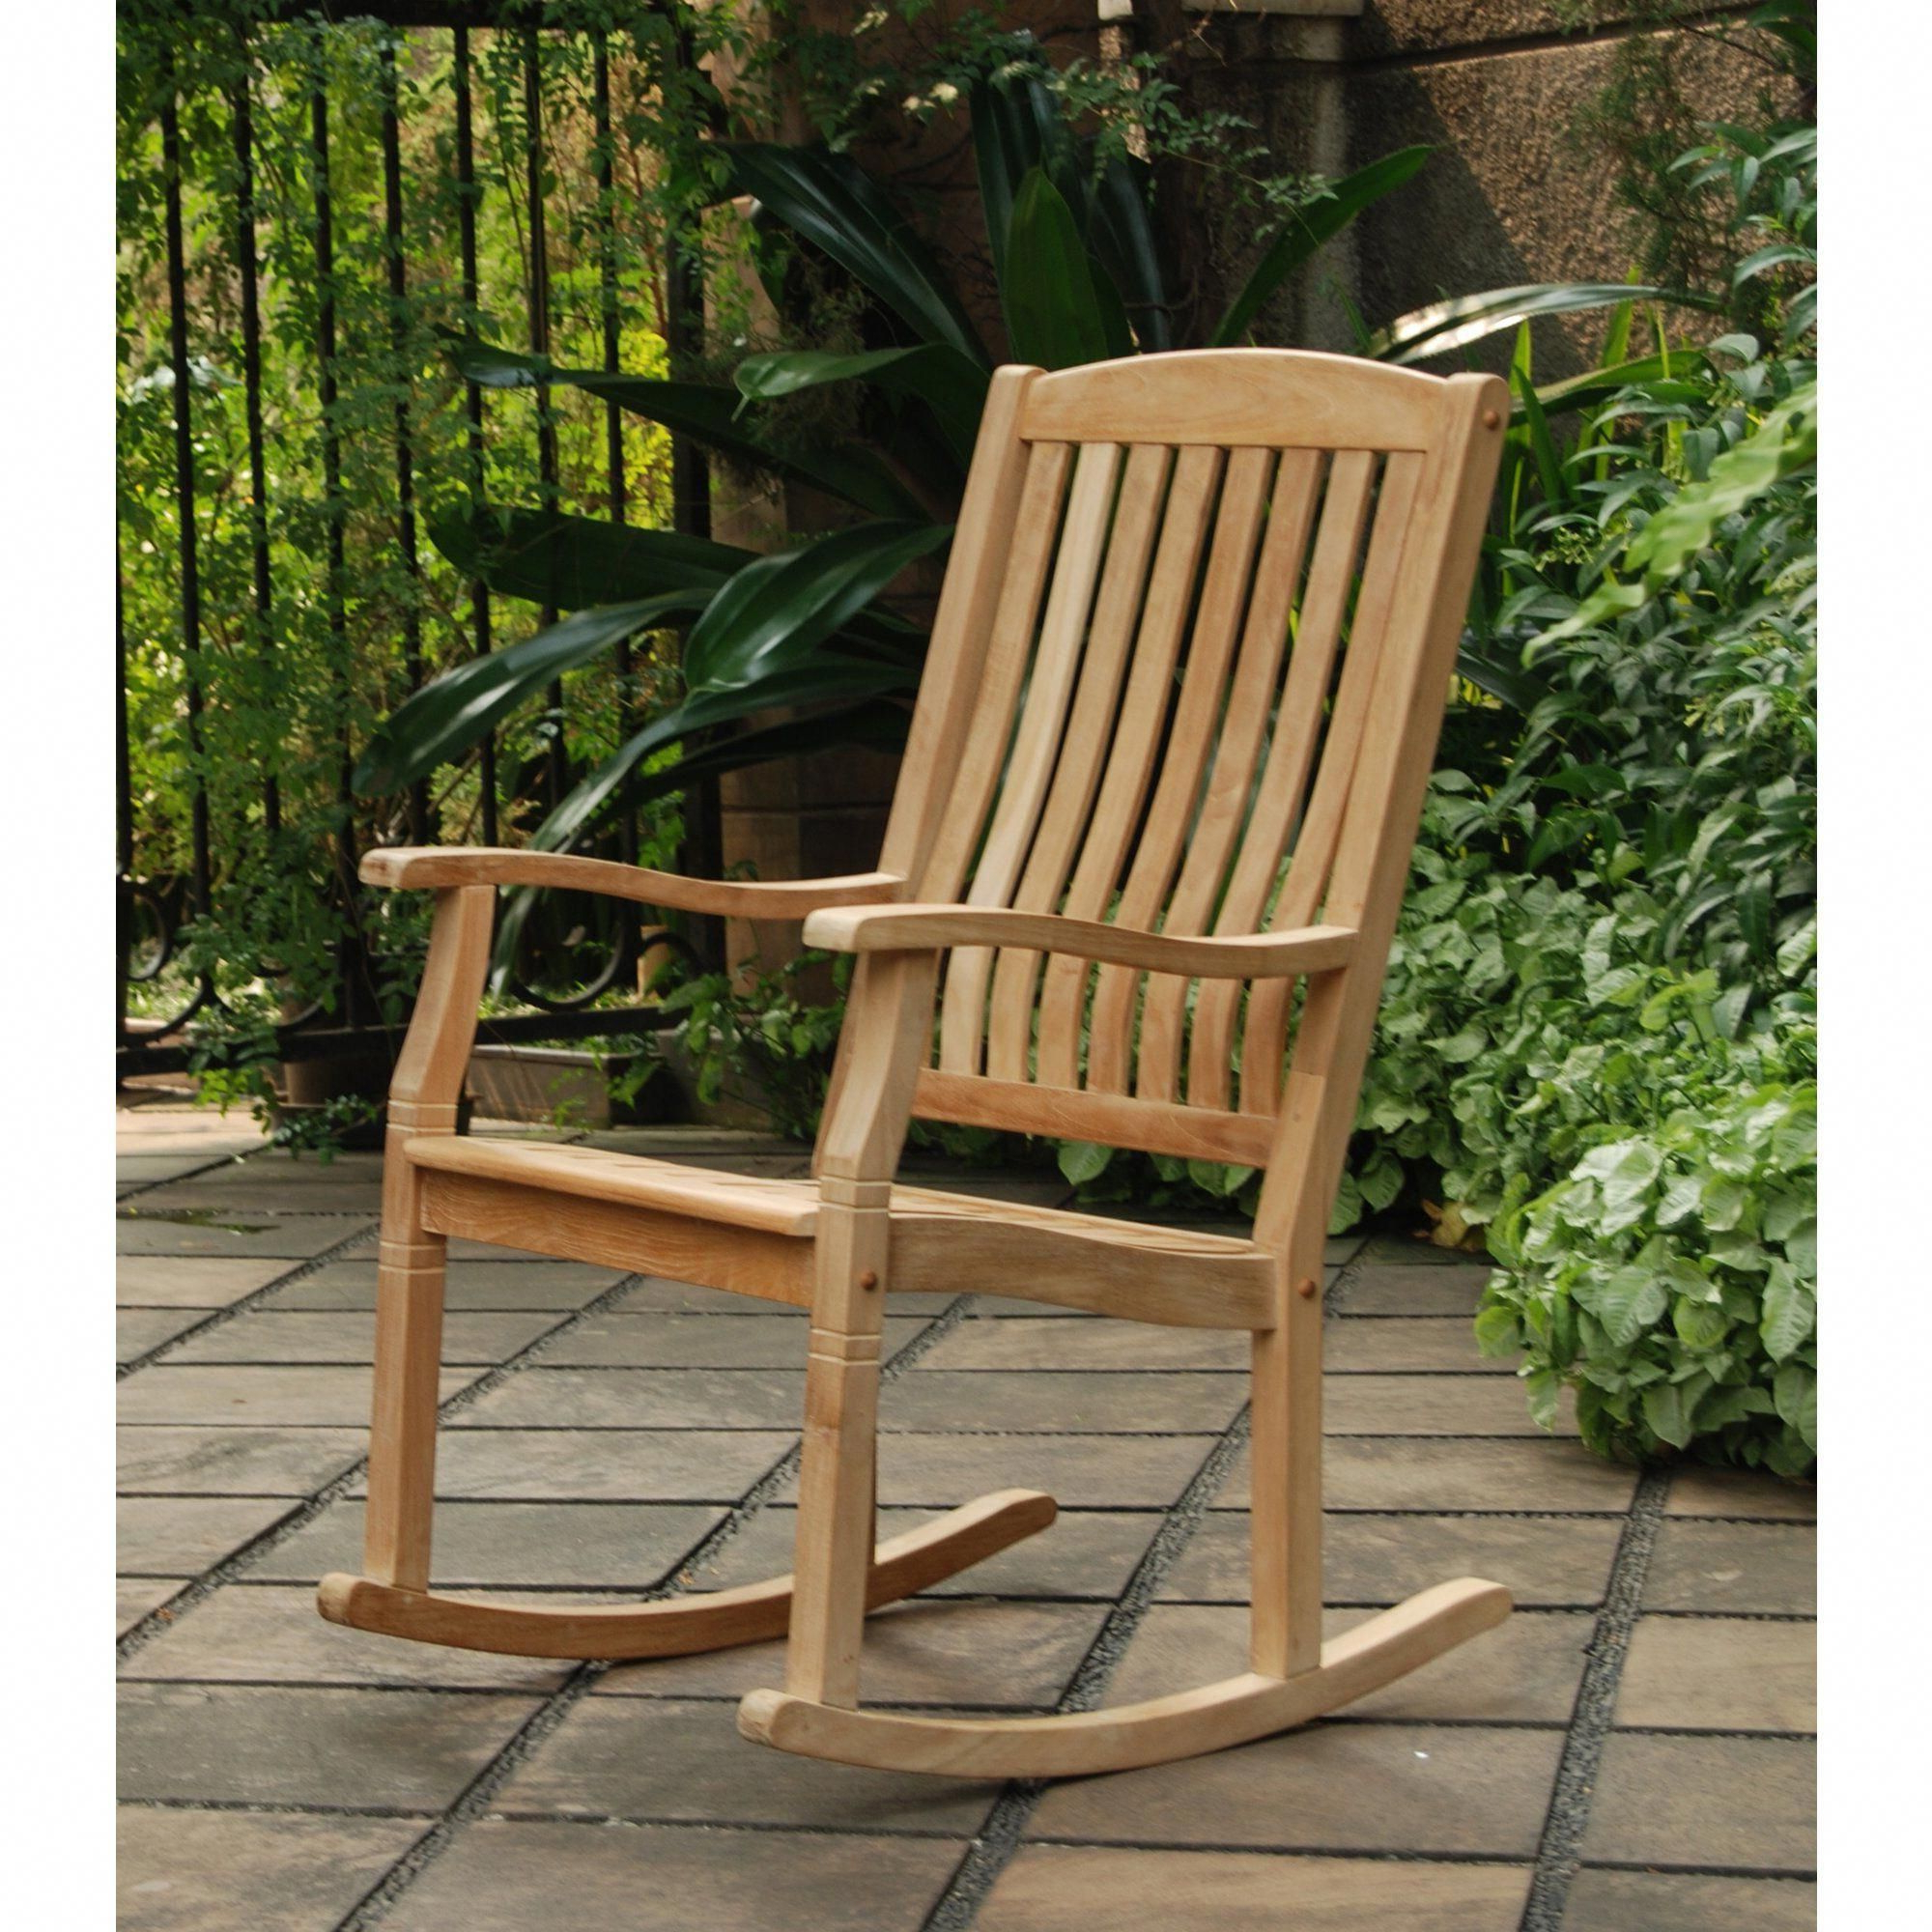 Well Known Seymour Porch Rocking Chair Sale $210 Teak Wood #chairsale Intended For Cambridge Casual Sherwood Teak Chaise Lounges (View 19 of 25)